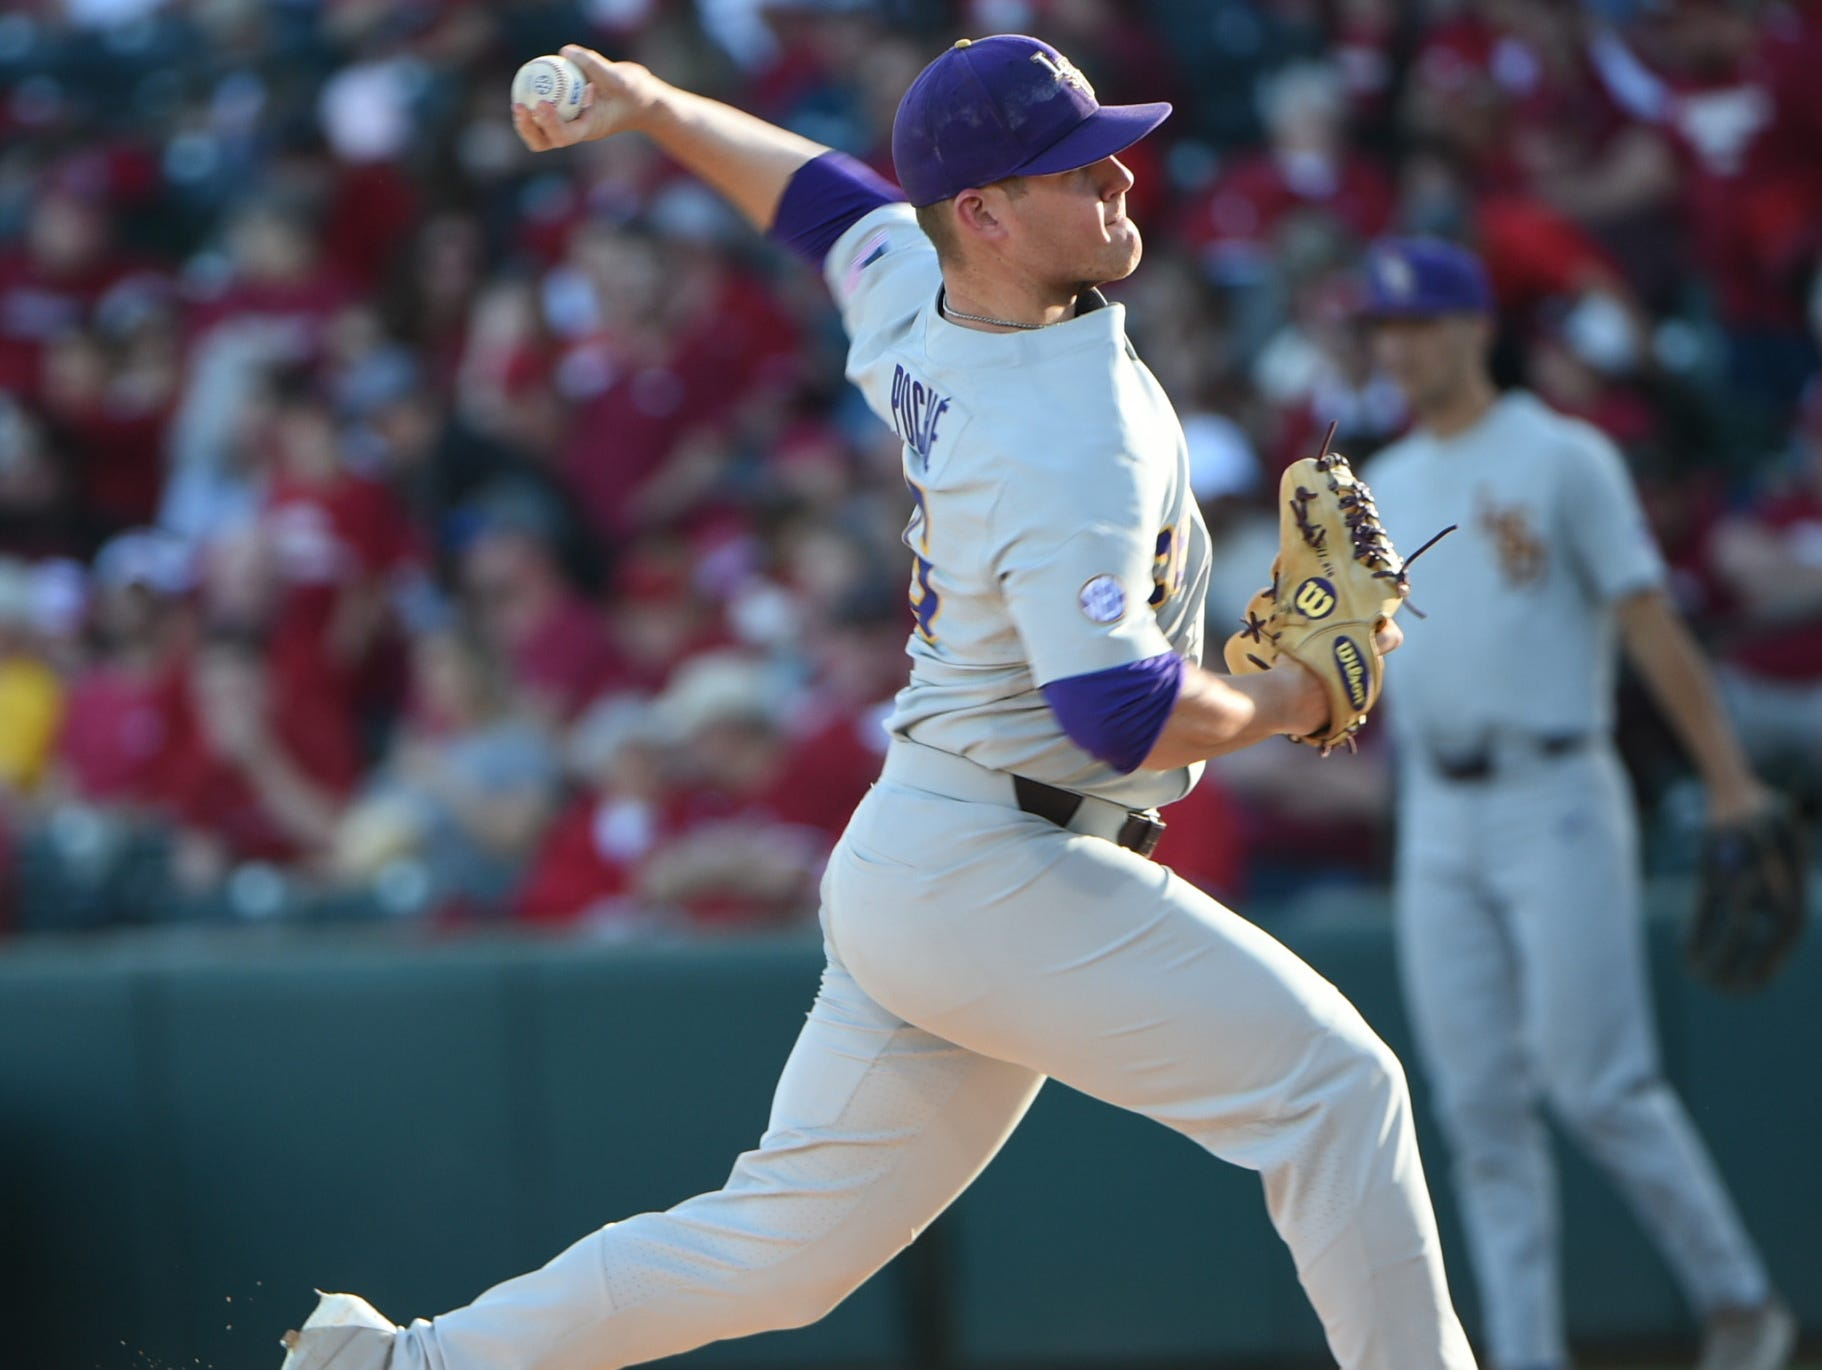 Jared Poche' starts for LSU in the second game of the series, April 8, 2017 in Fayetteville, Arkansas. Photo by Chris Daigle Special to the Advertiser